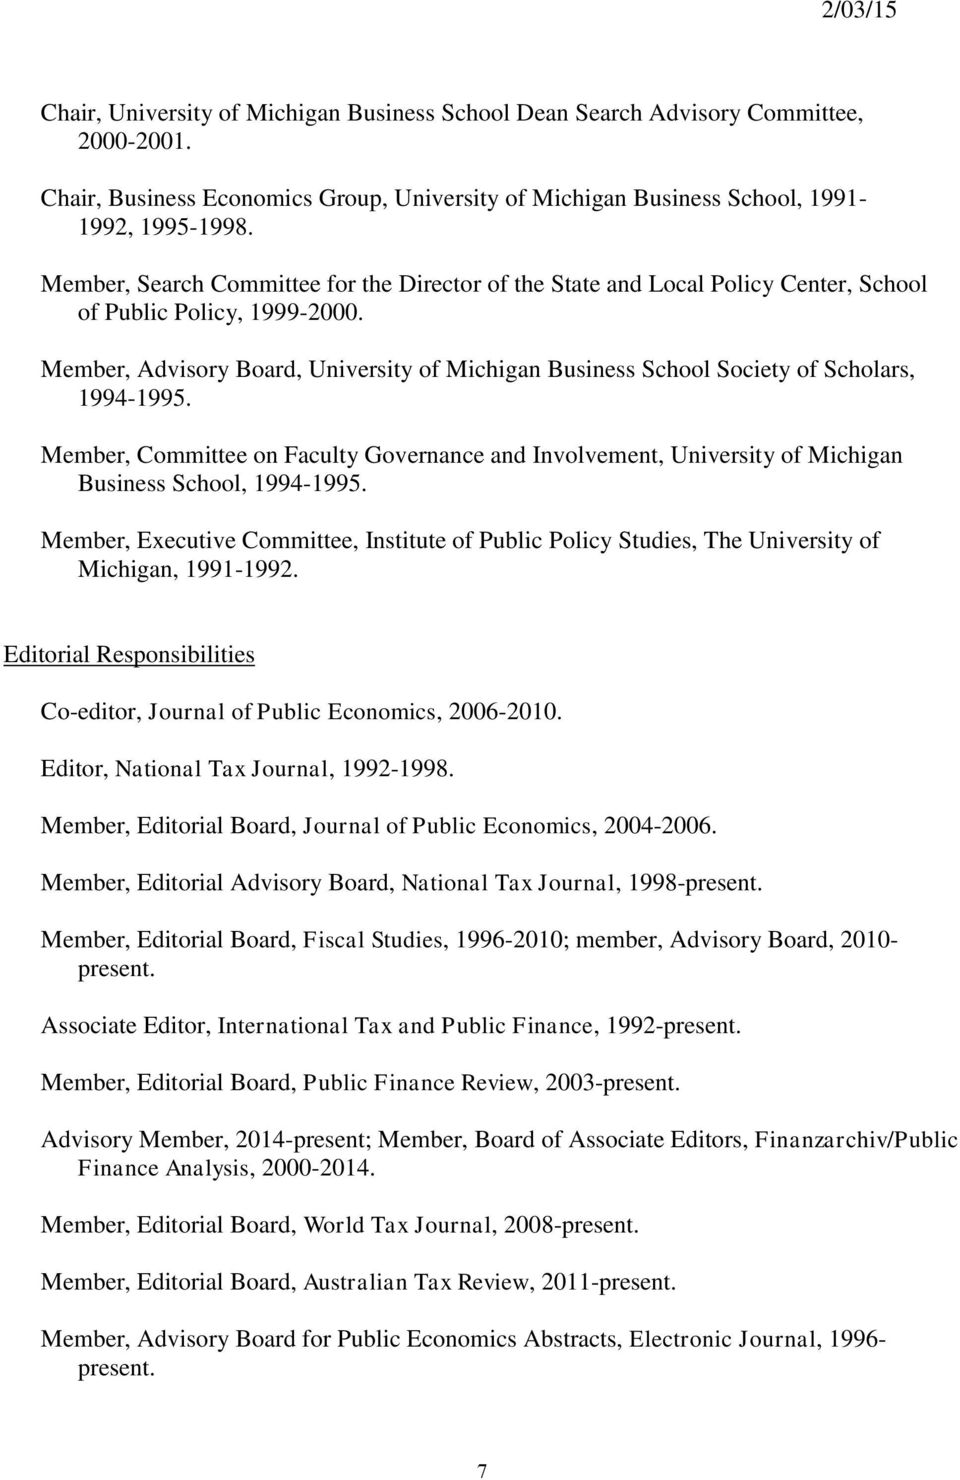 Member, Advisory Board, University of Michigan Business School Society of Scholars, 1994-1995.